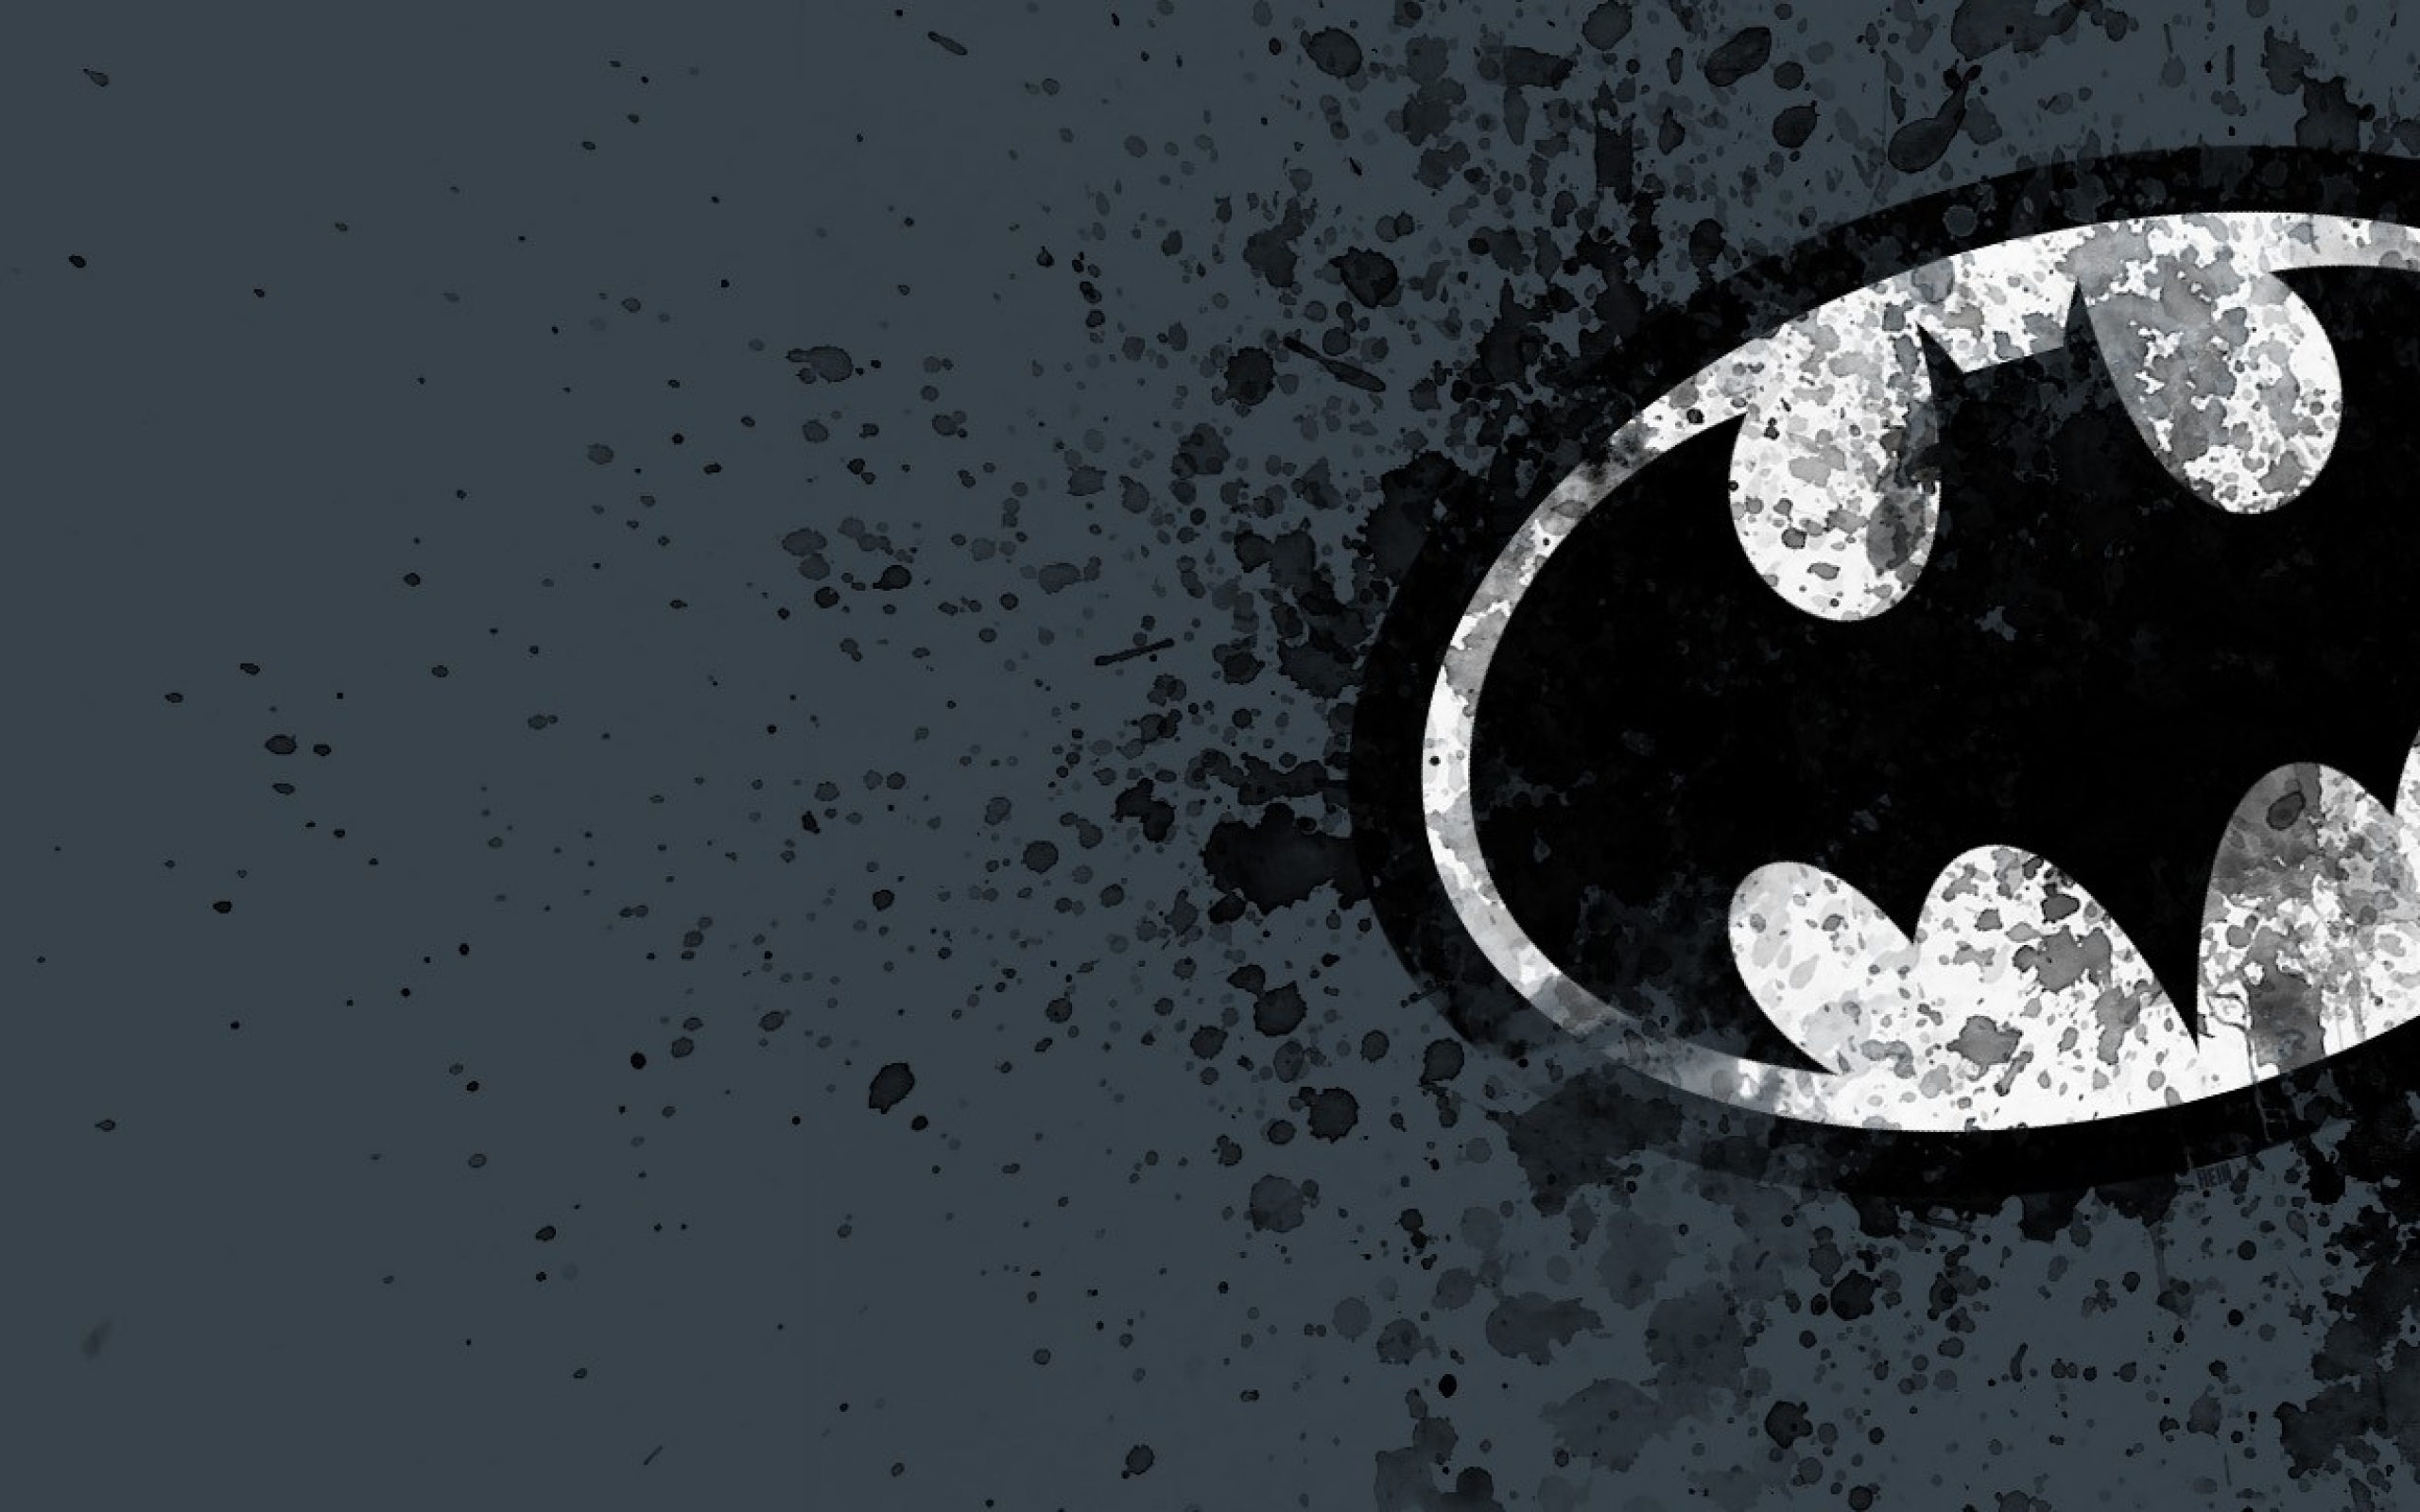 wallpaper batman mobile - photo #39